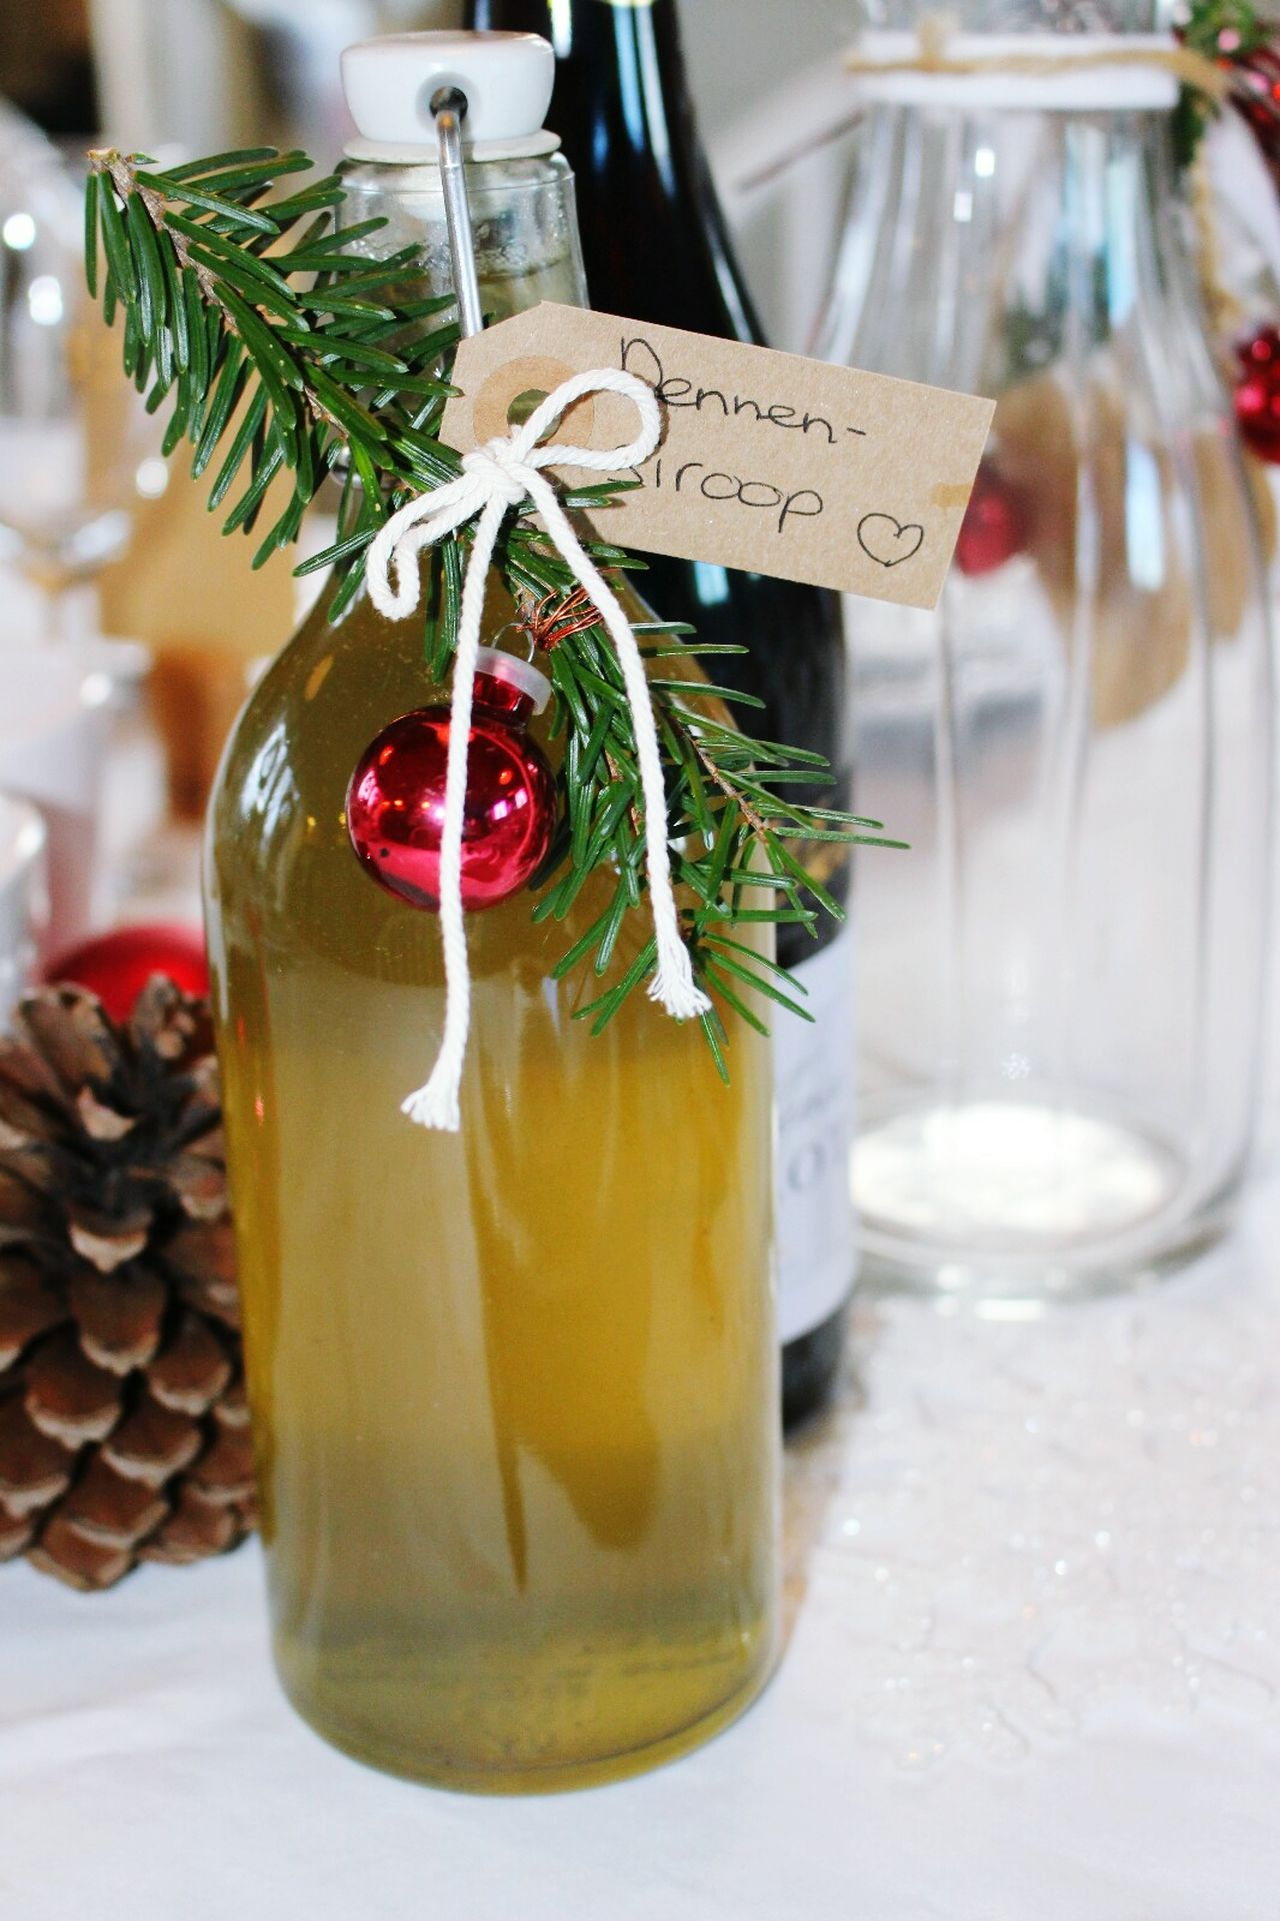 Christmas Food And Drink Christmas Decoration Freshness Happy Picknick Prinsenbeek Food And Drink Christmas Sirop Dennensiroop